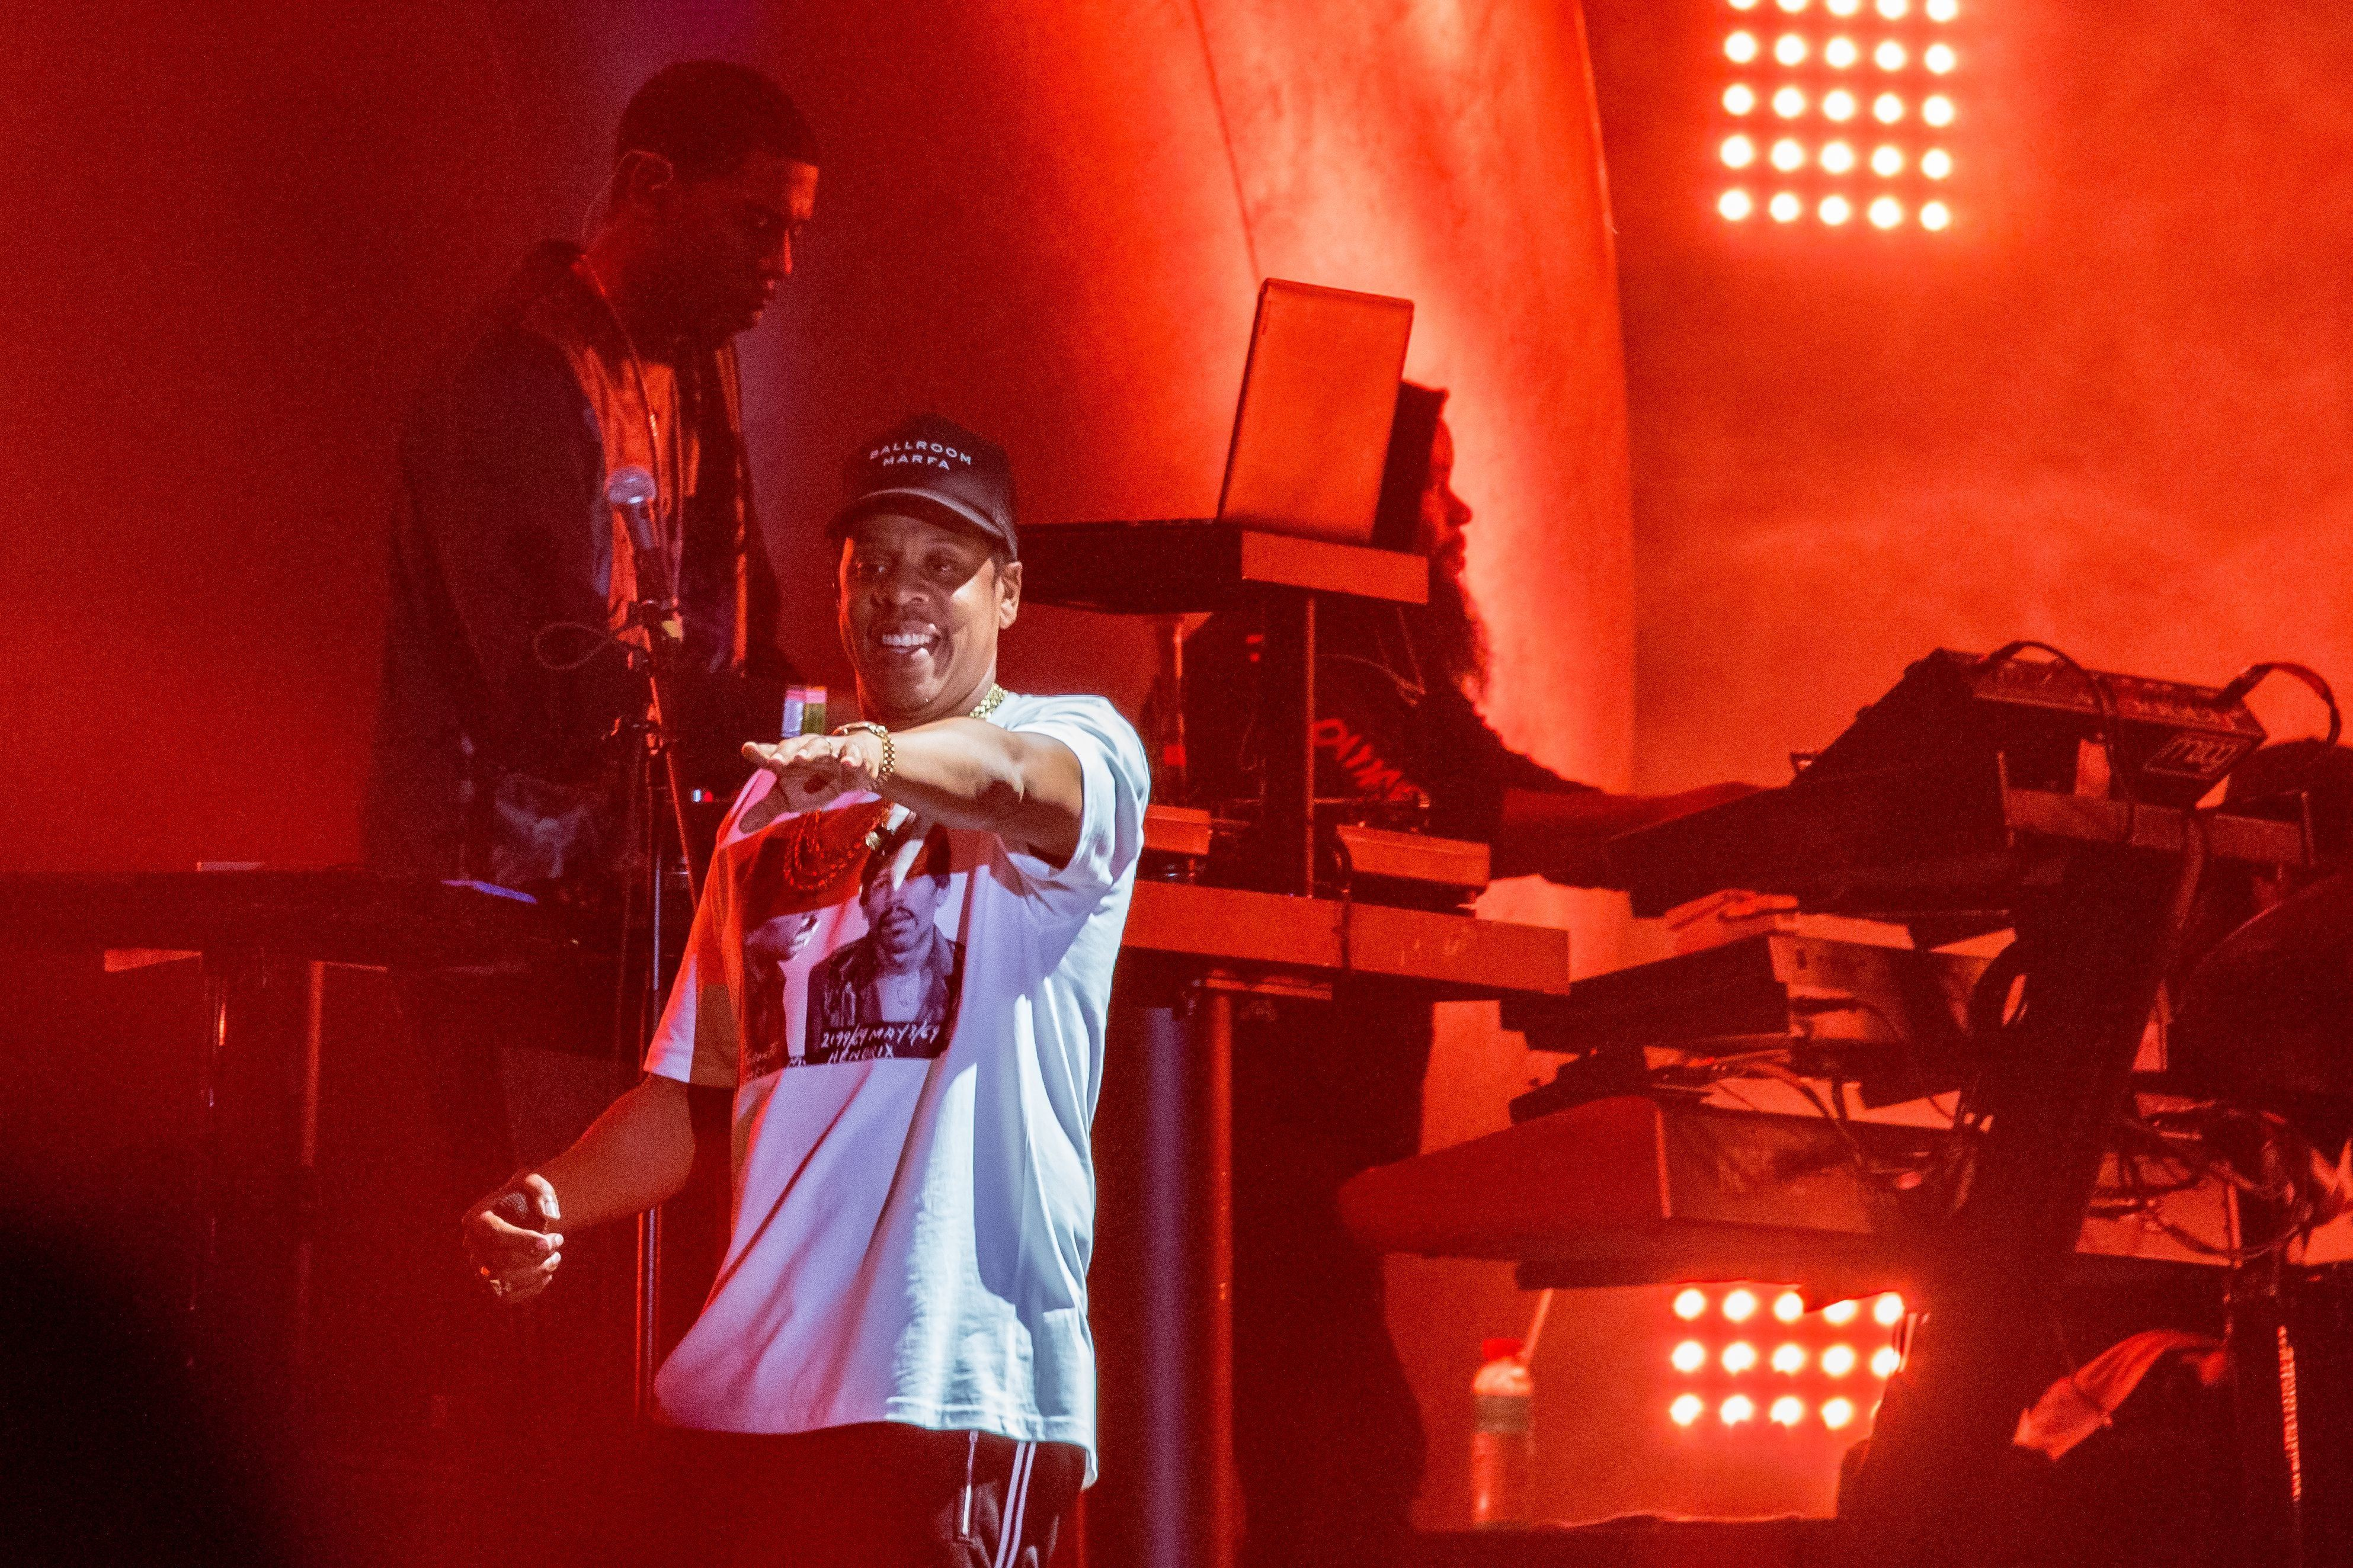 Jay-Z Stops Concert To Give Empowering Message To 9-Year-Old Girl